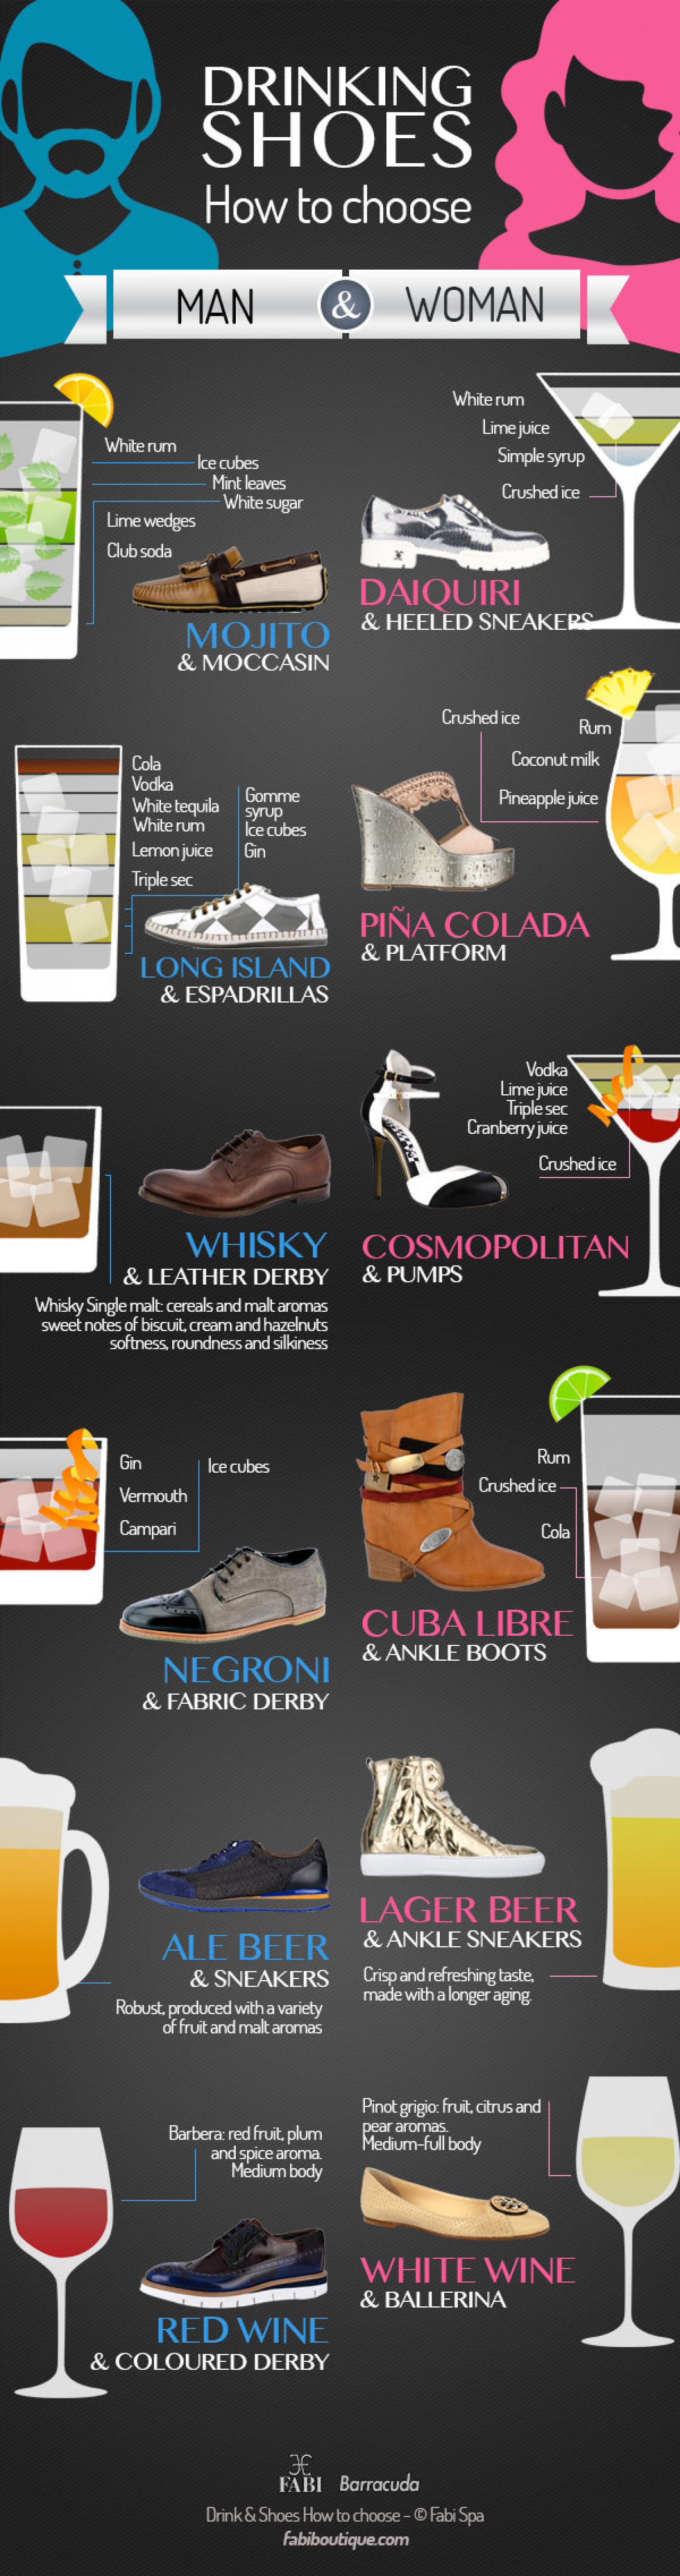 Drinking Shoes How to Choose